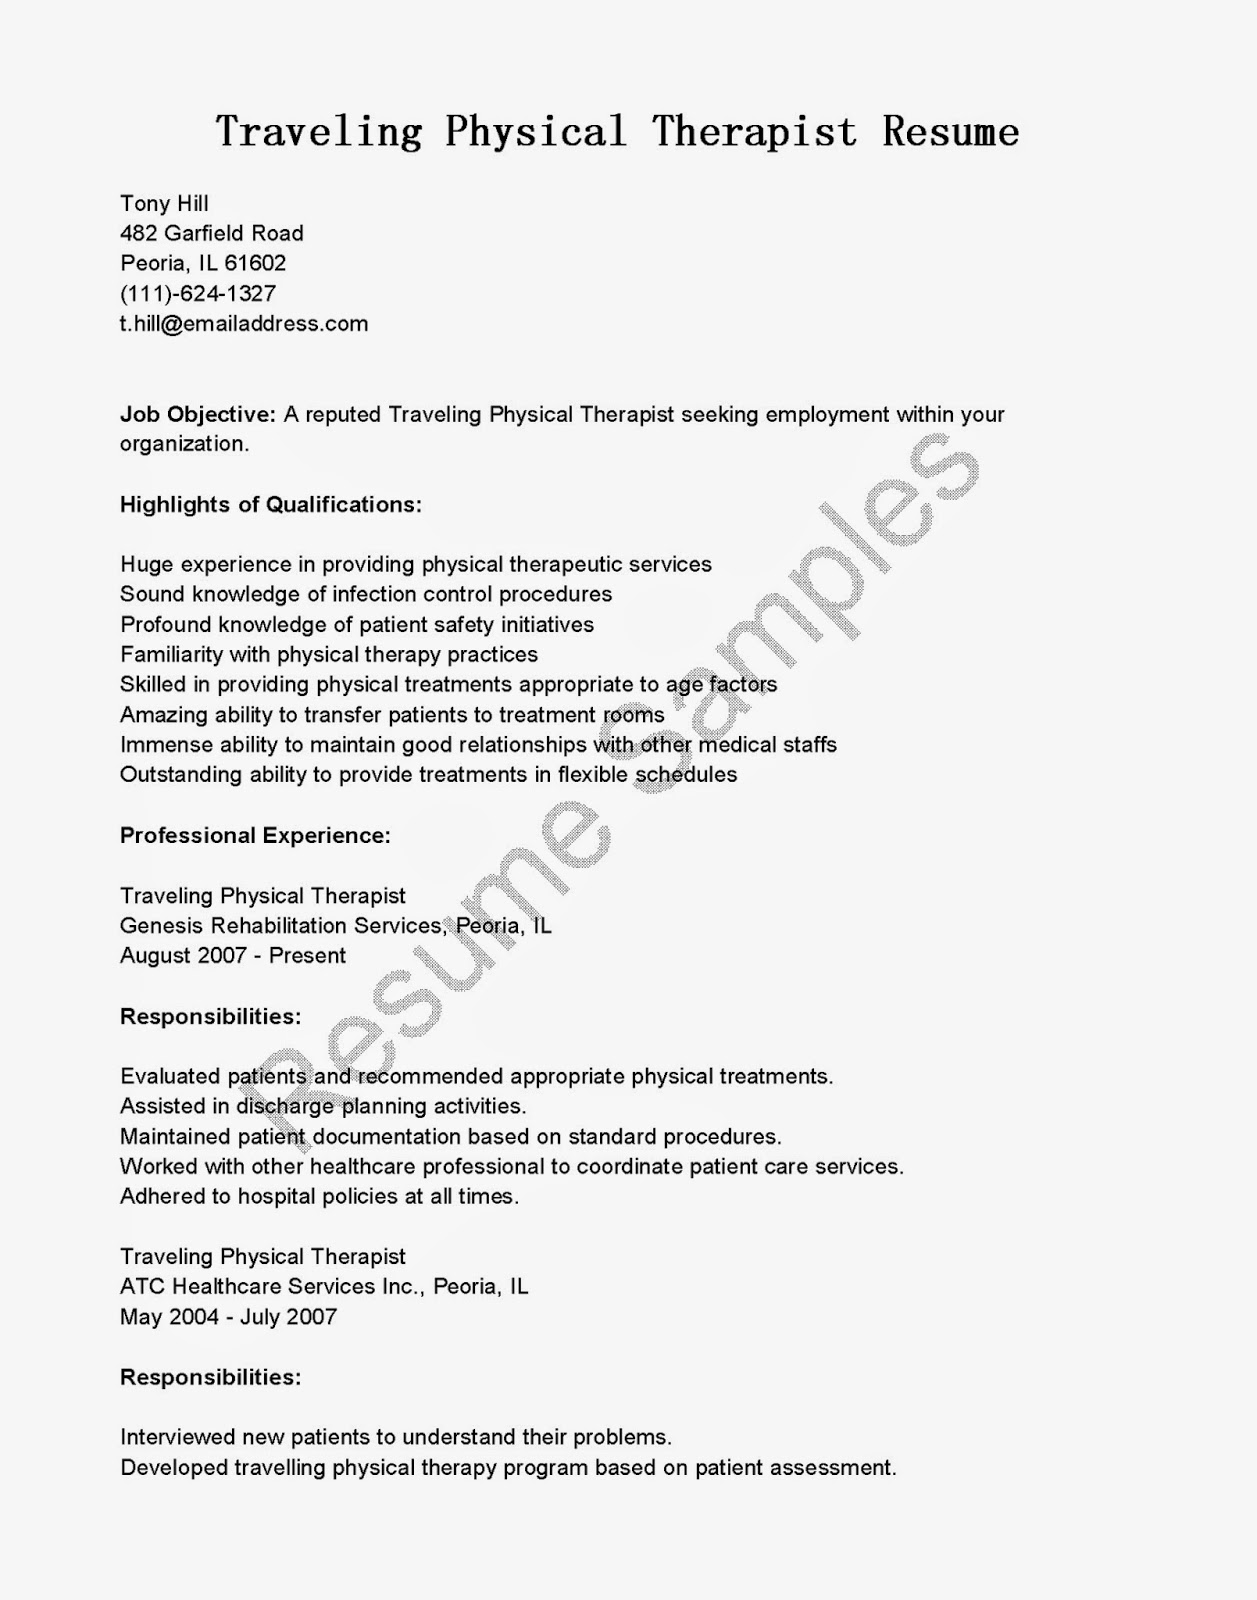 Essay Massage Therapist Resume Template Samples Resume Samples Home Design  Resume CV Cover Leter